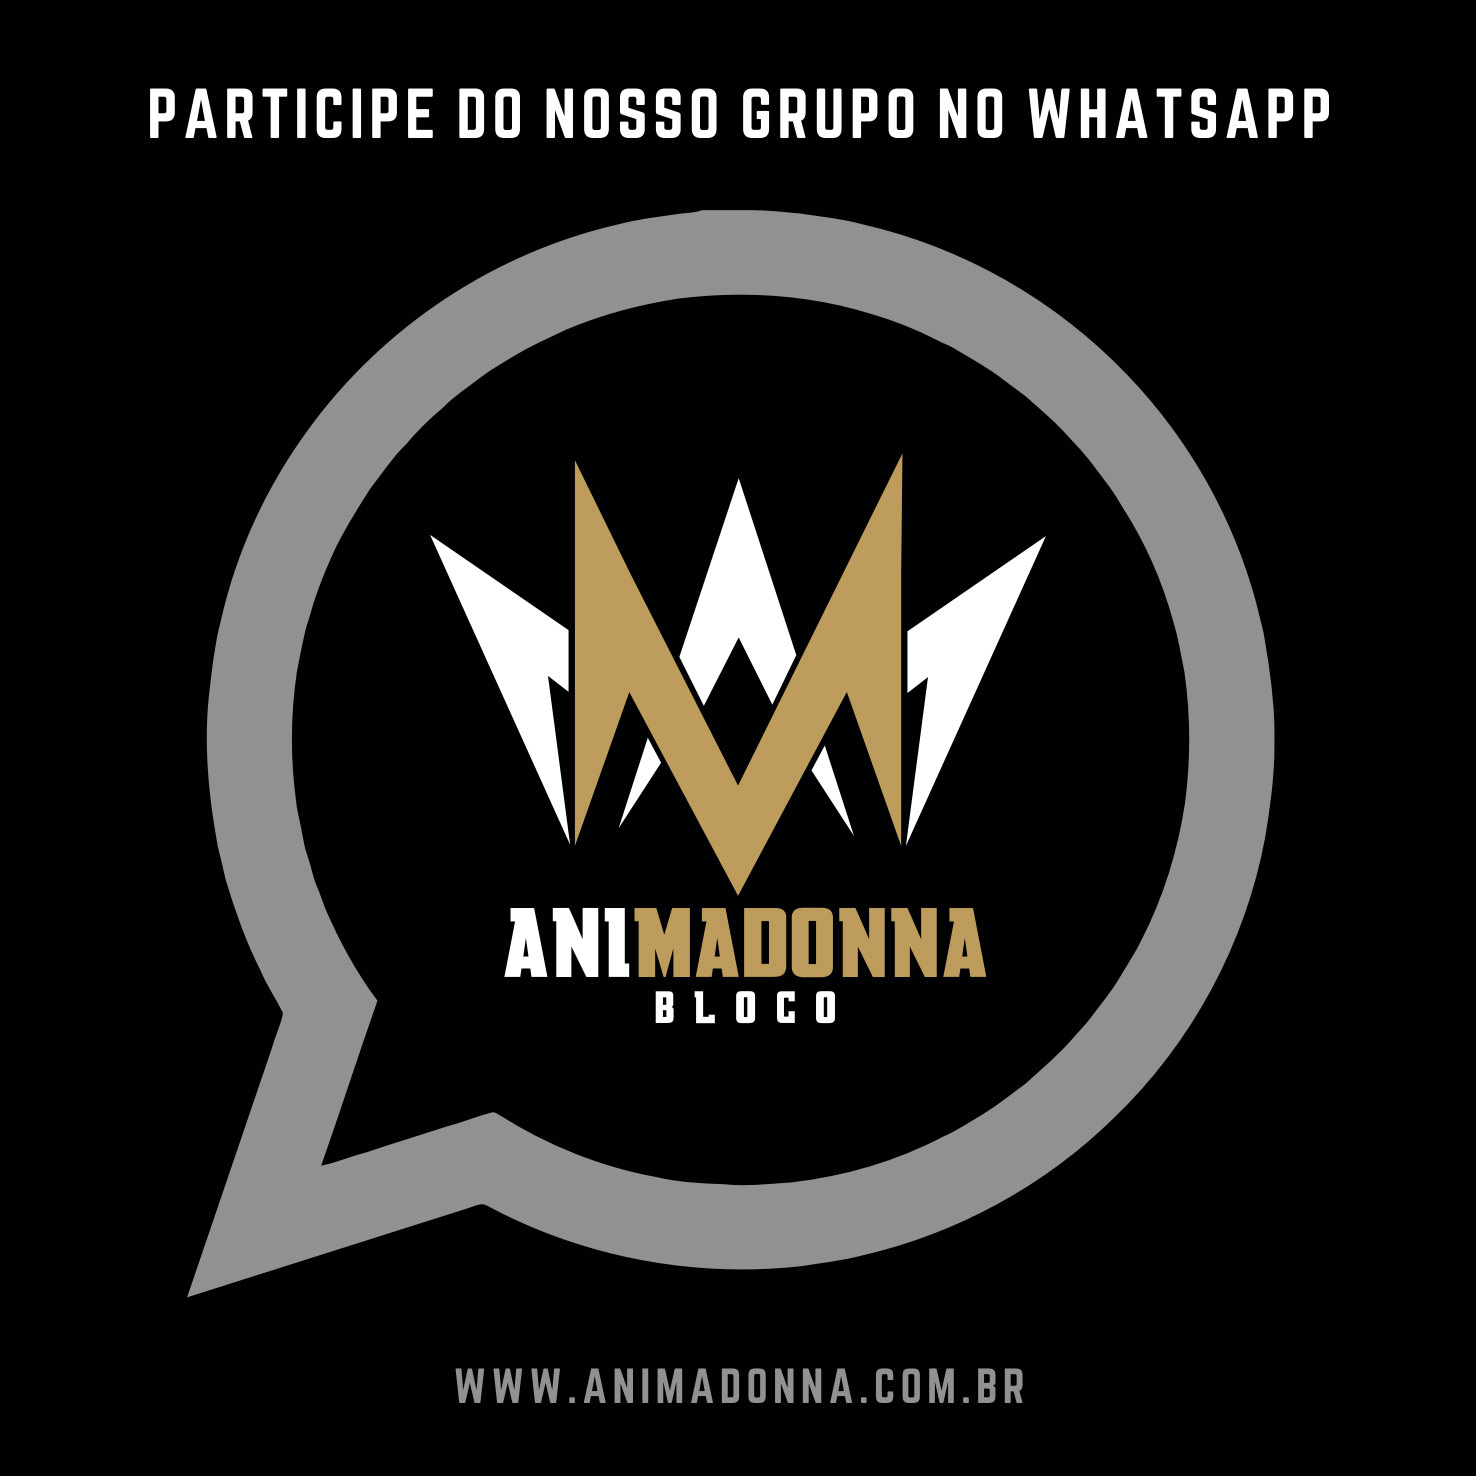 CONVERSE COM O ANIMADONNA NO WHATSAPP